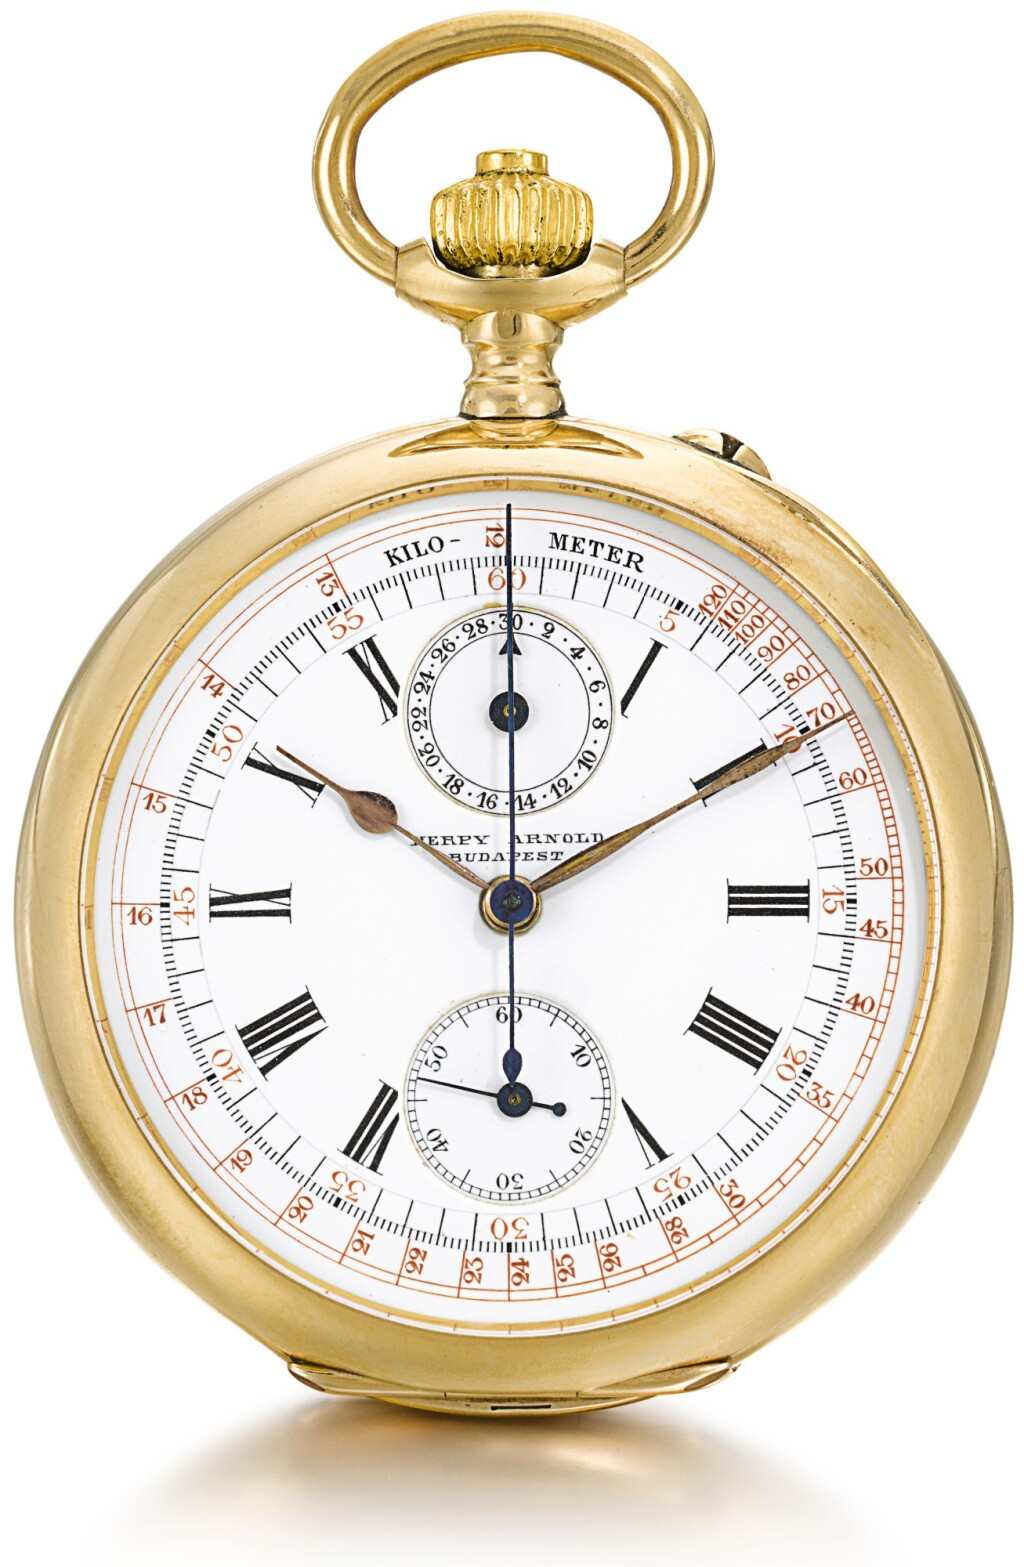 LONGINES | RETAILED BY HERPY ARNOLD, BUDAPEST: A GOLD OPEN-FACED KEYLESS LEVER CHRONOGRAPH WATCH WITH VERTICAL REGISTER AND TACHYMETER SCALE  CIRCA 1900